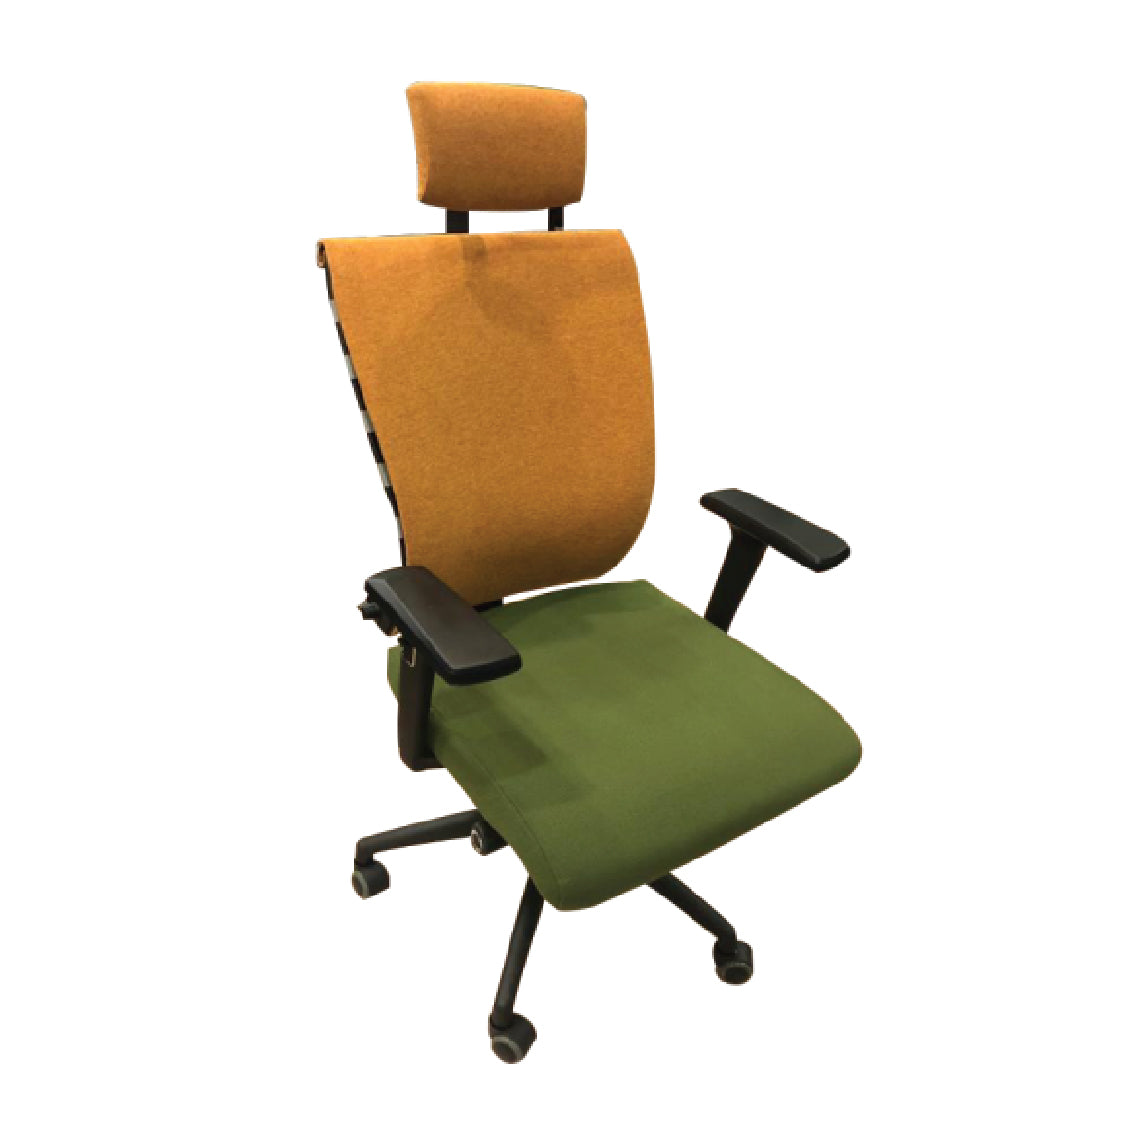 Gary Korean Chair